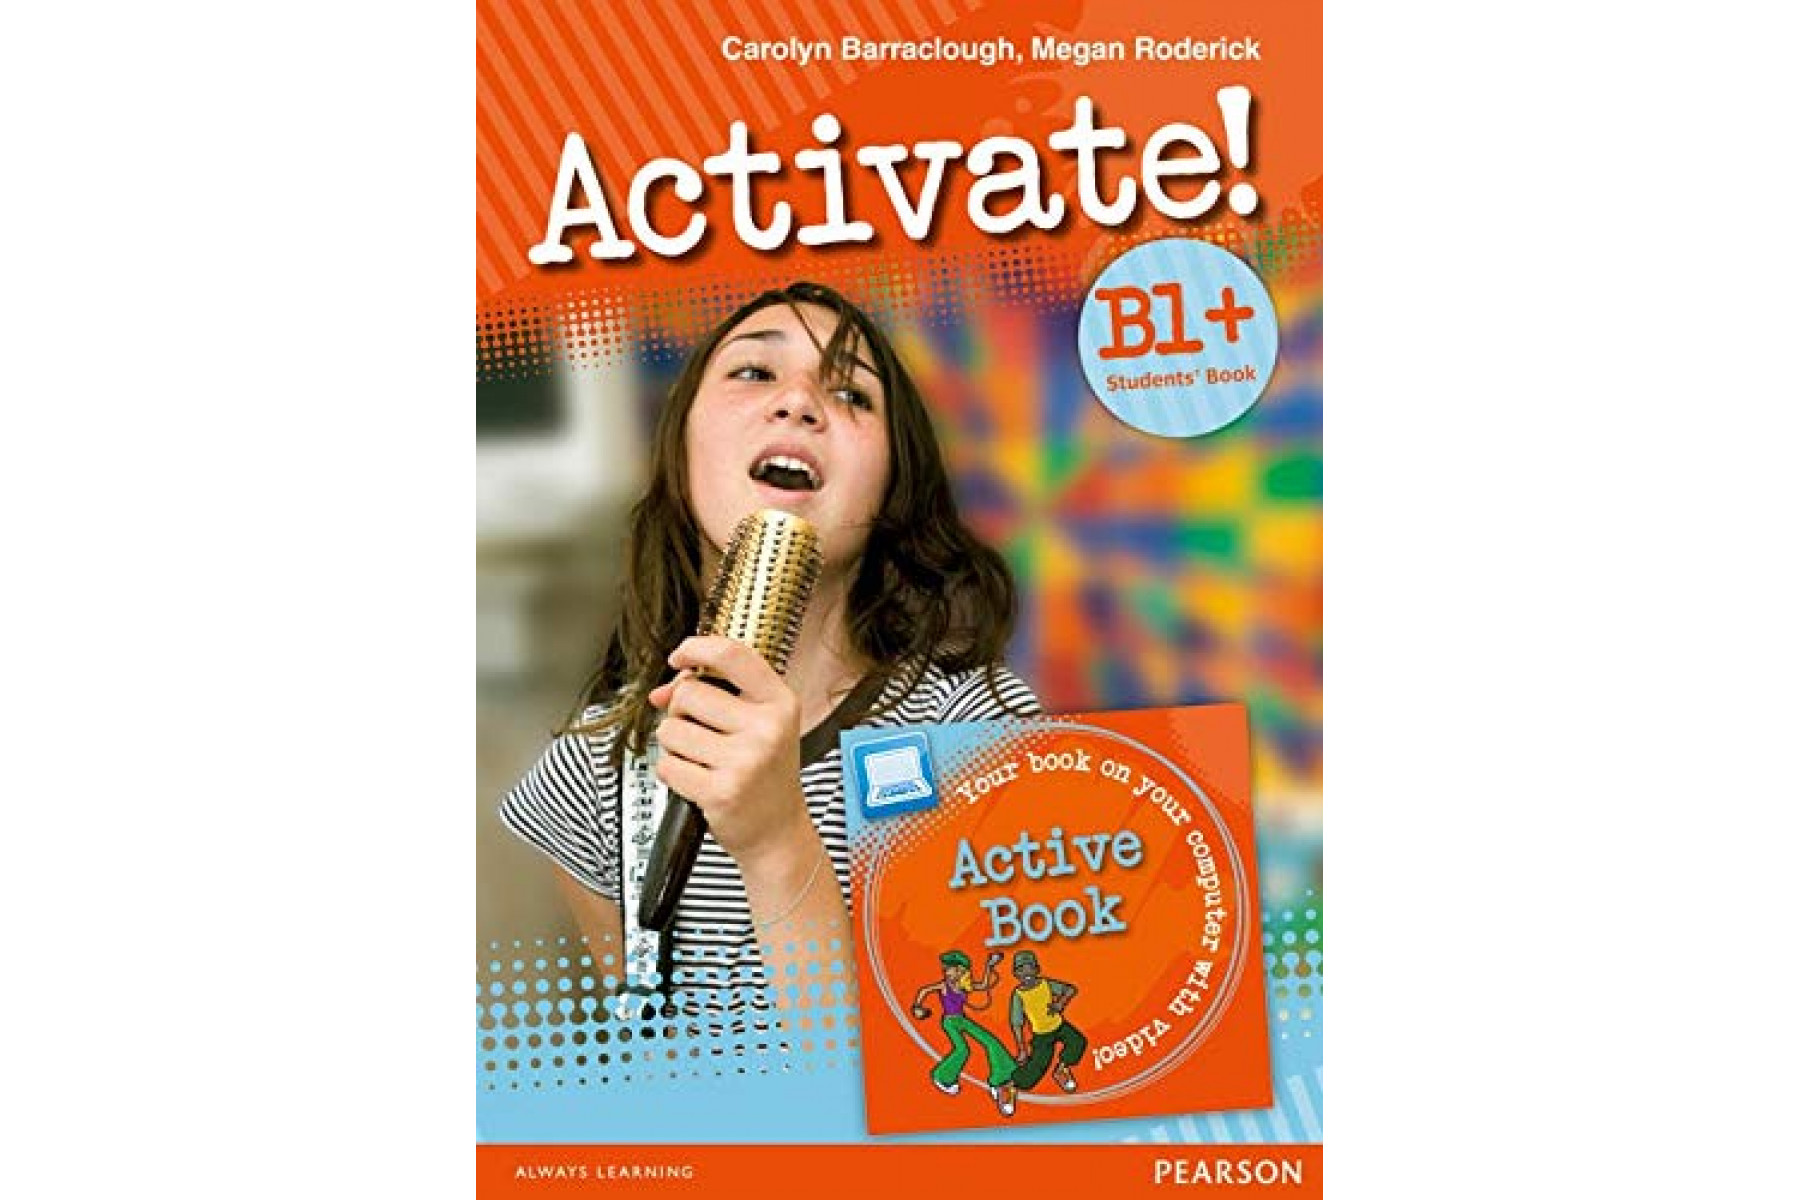 Activate! B1+: Students' Book and Active Book Pack